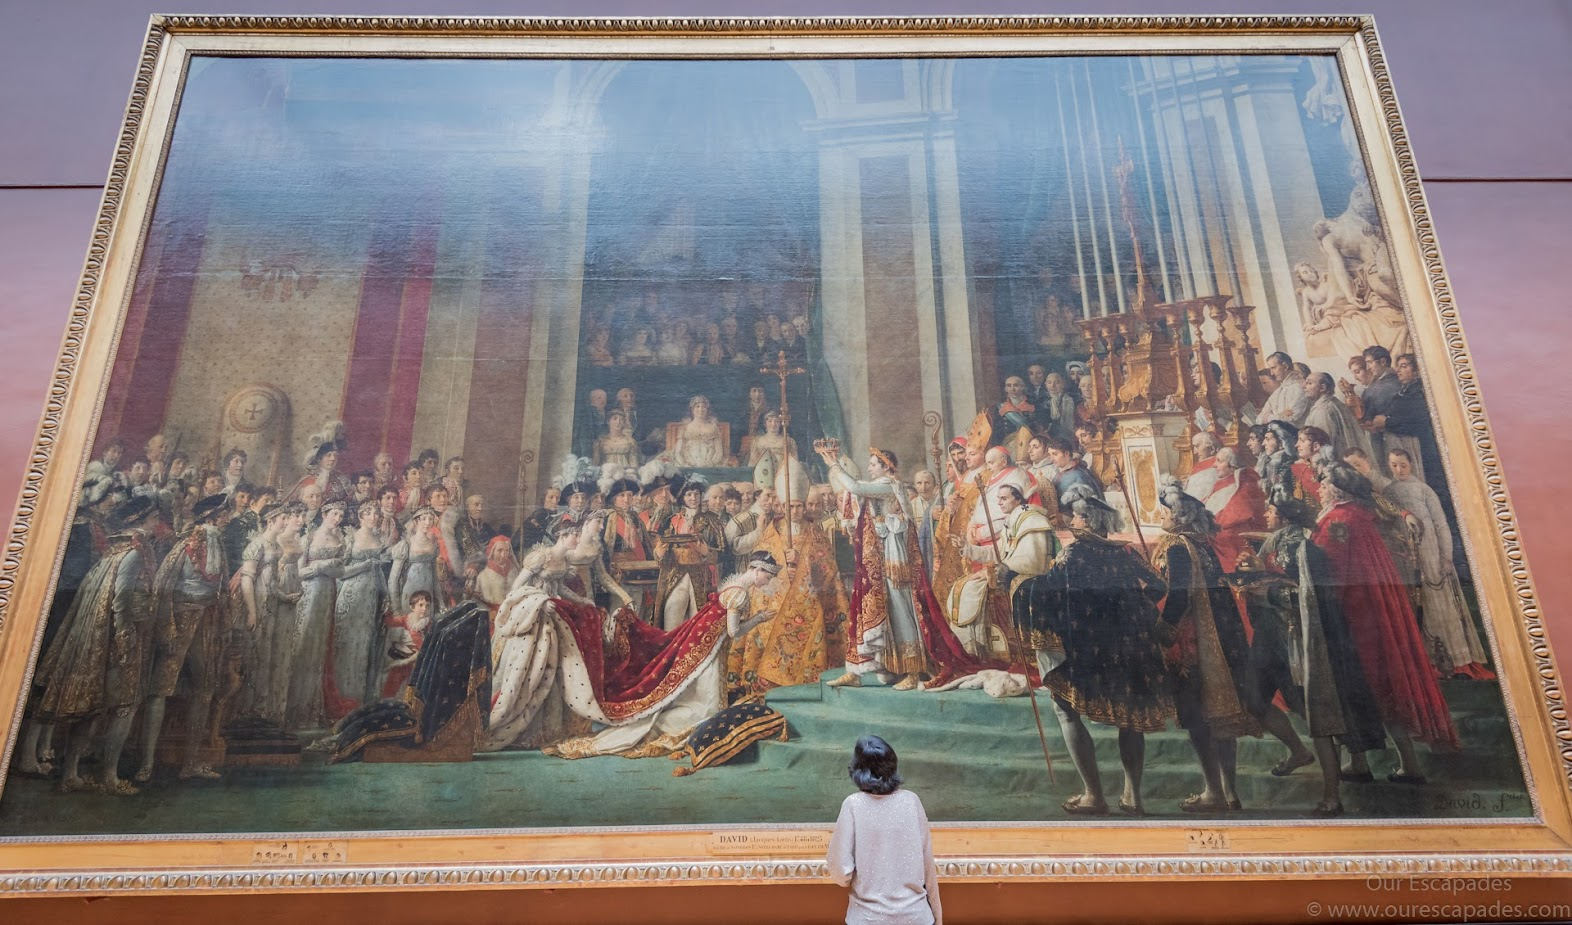 One of the largest paintings inside the Louvre